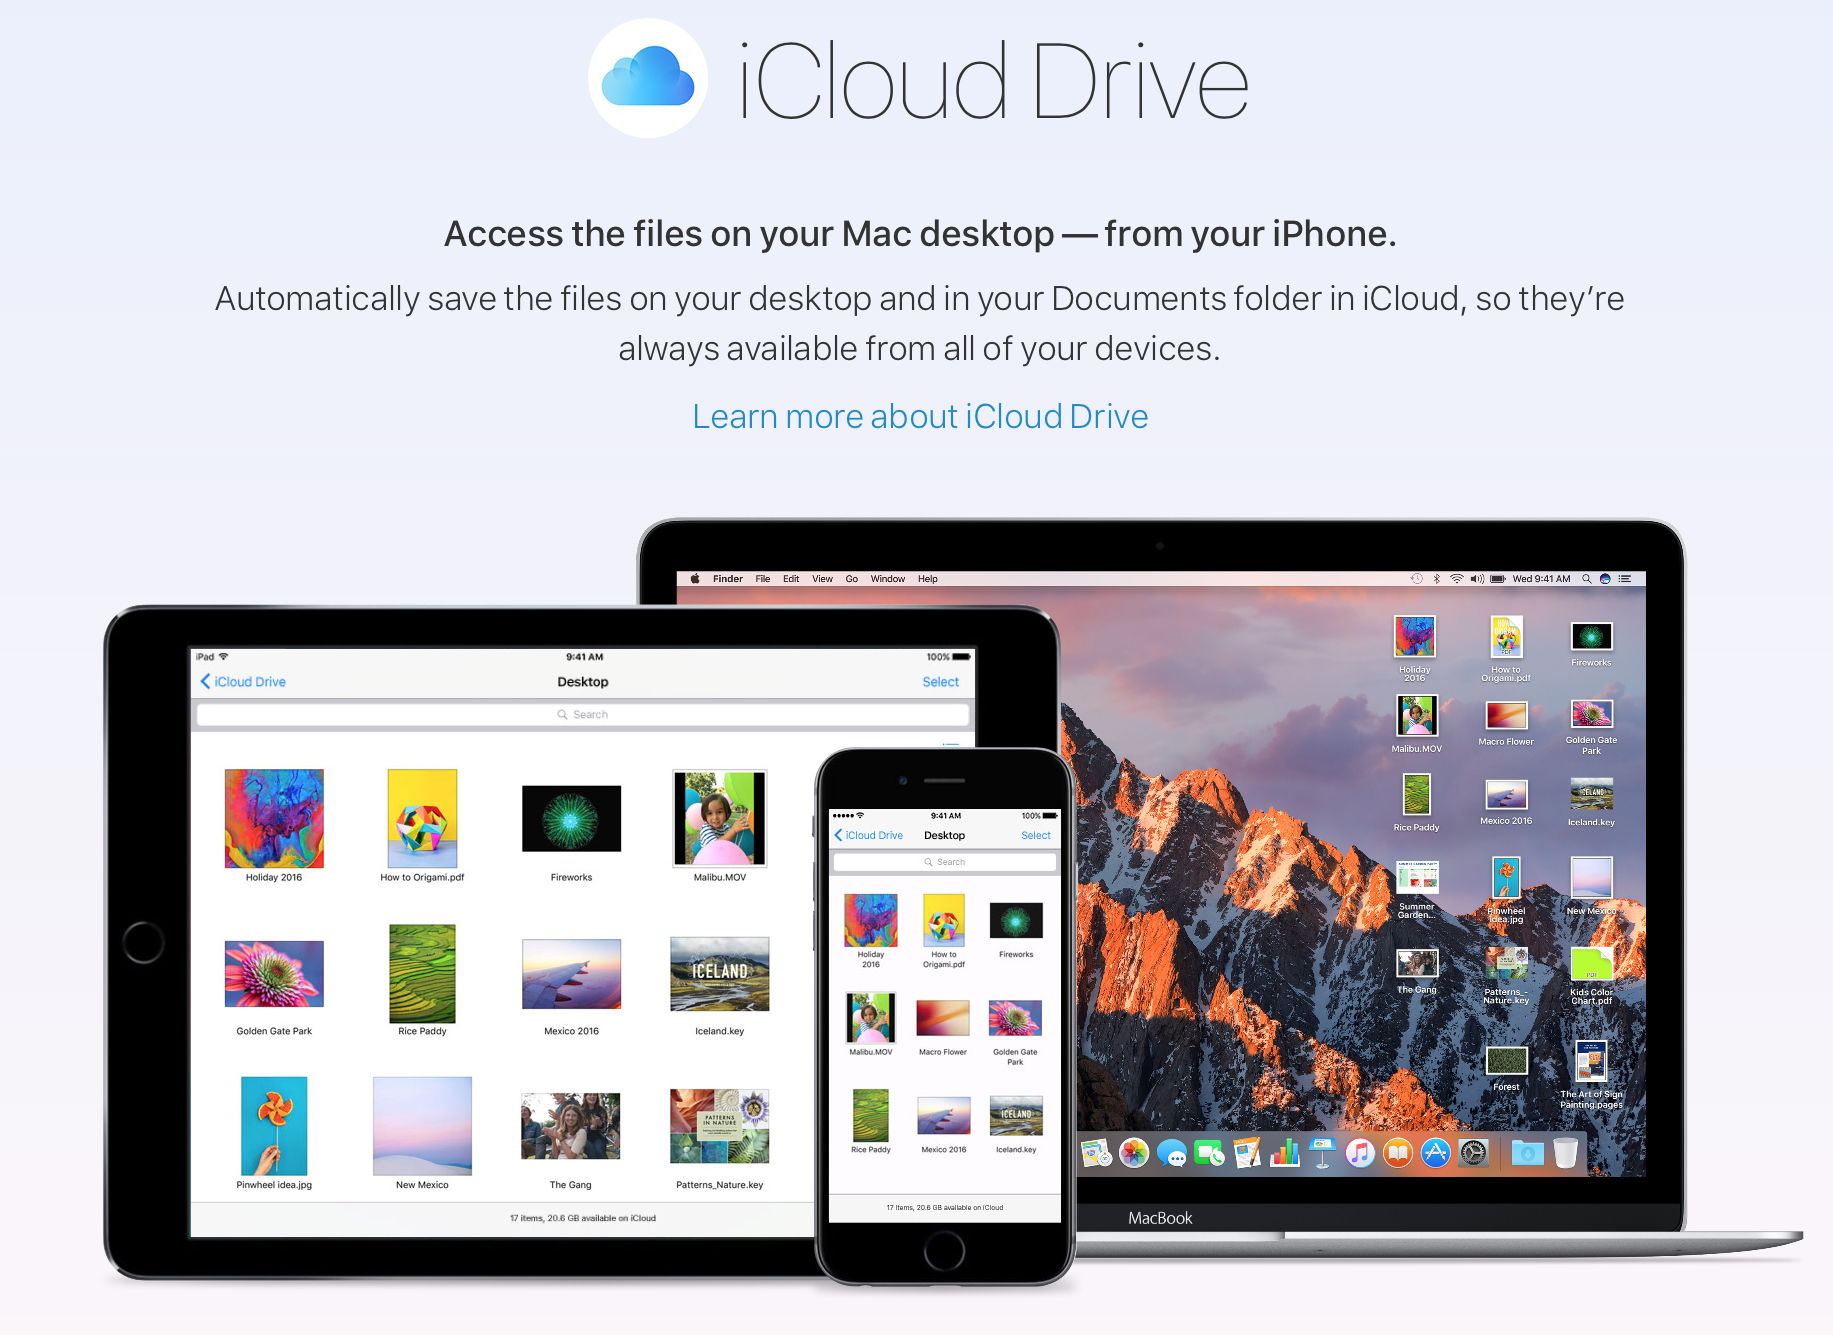 Sierra gives the ability to access all your computer files with an iPhone.